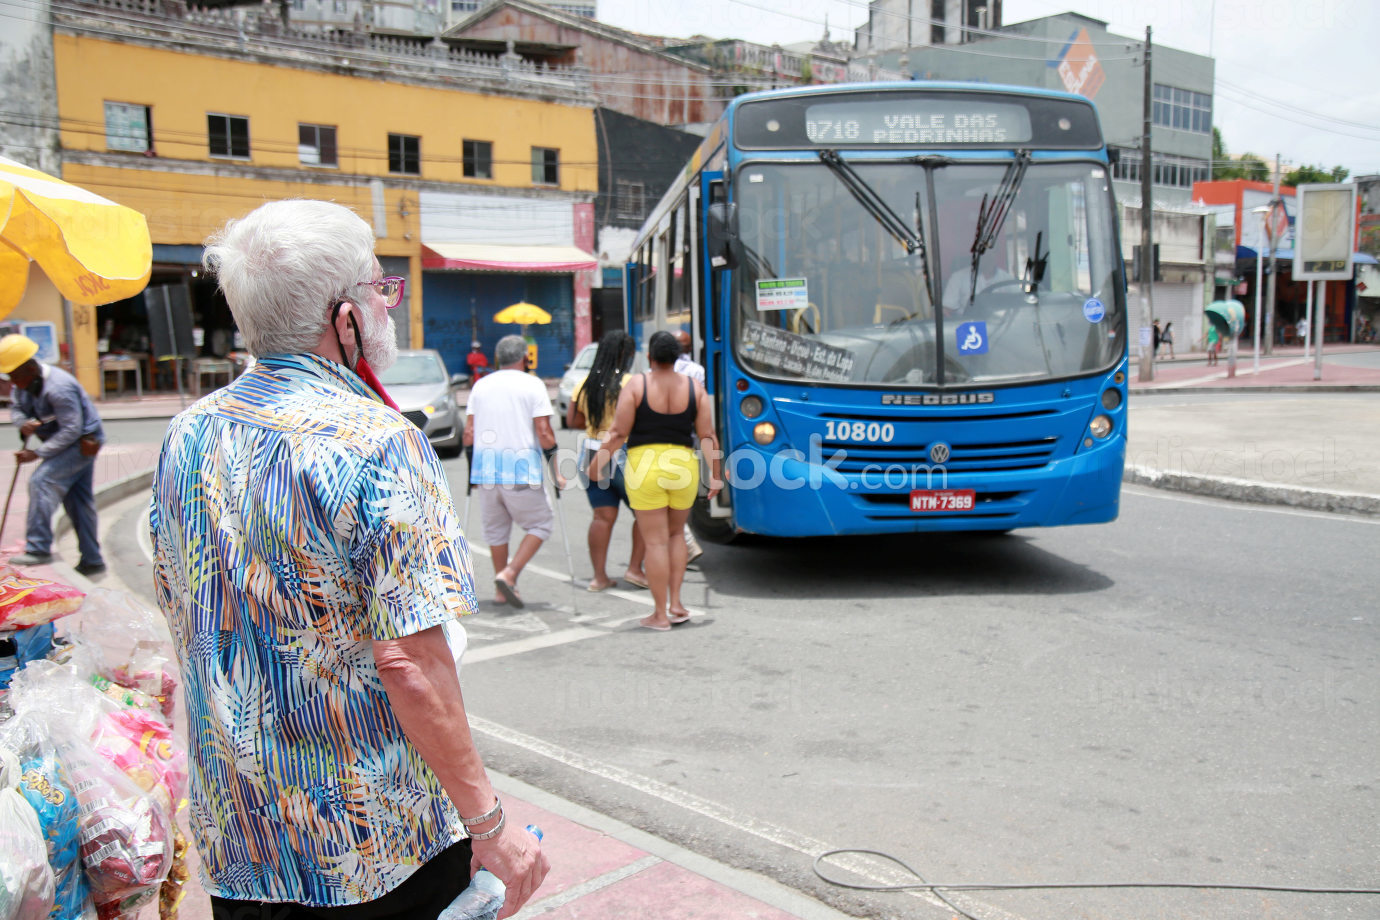 salvador, bahia, brazil-february 8, 2021: people are seen getting on public transport buses at the Barroquinha terminal, in the city of Salvador.